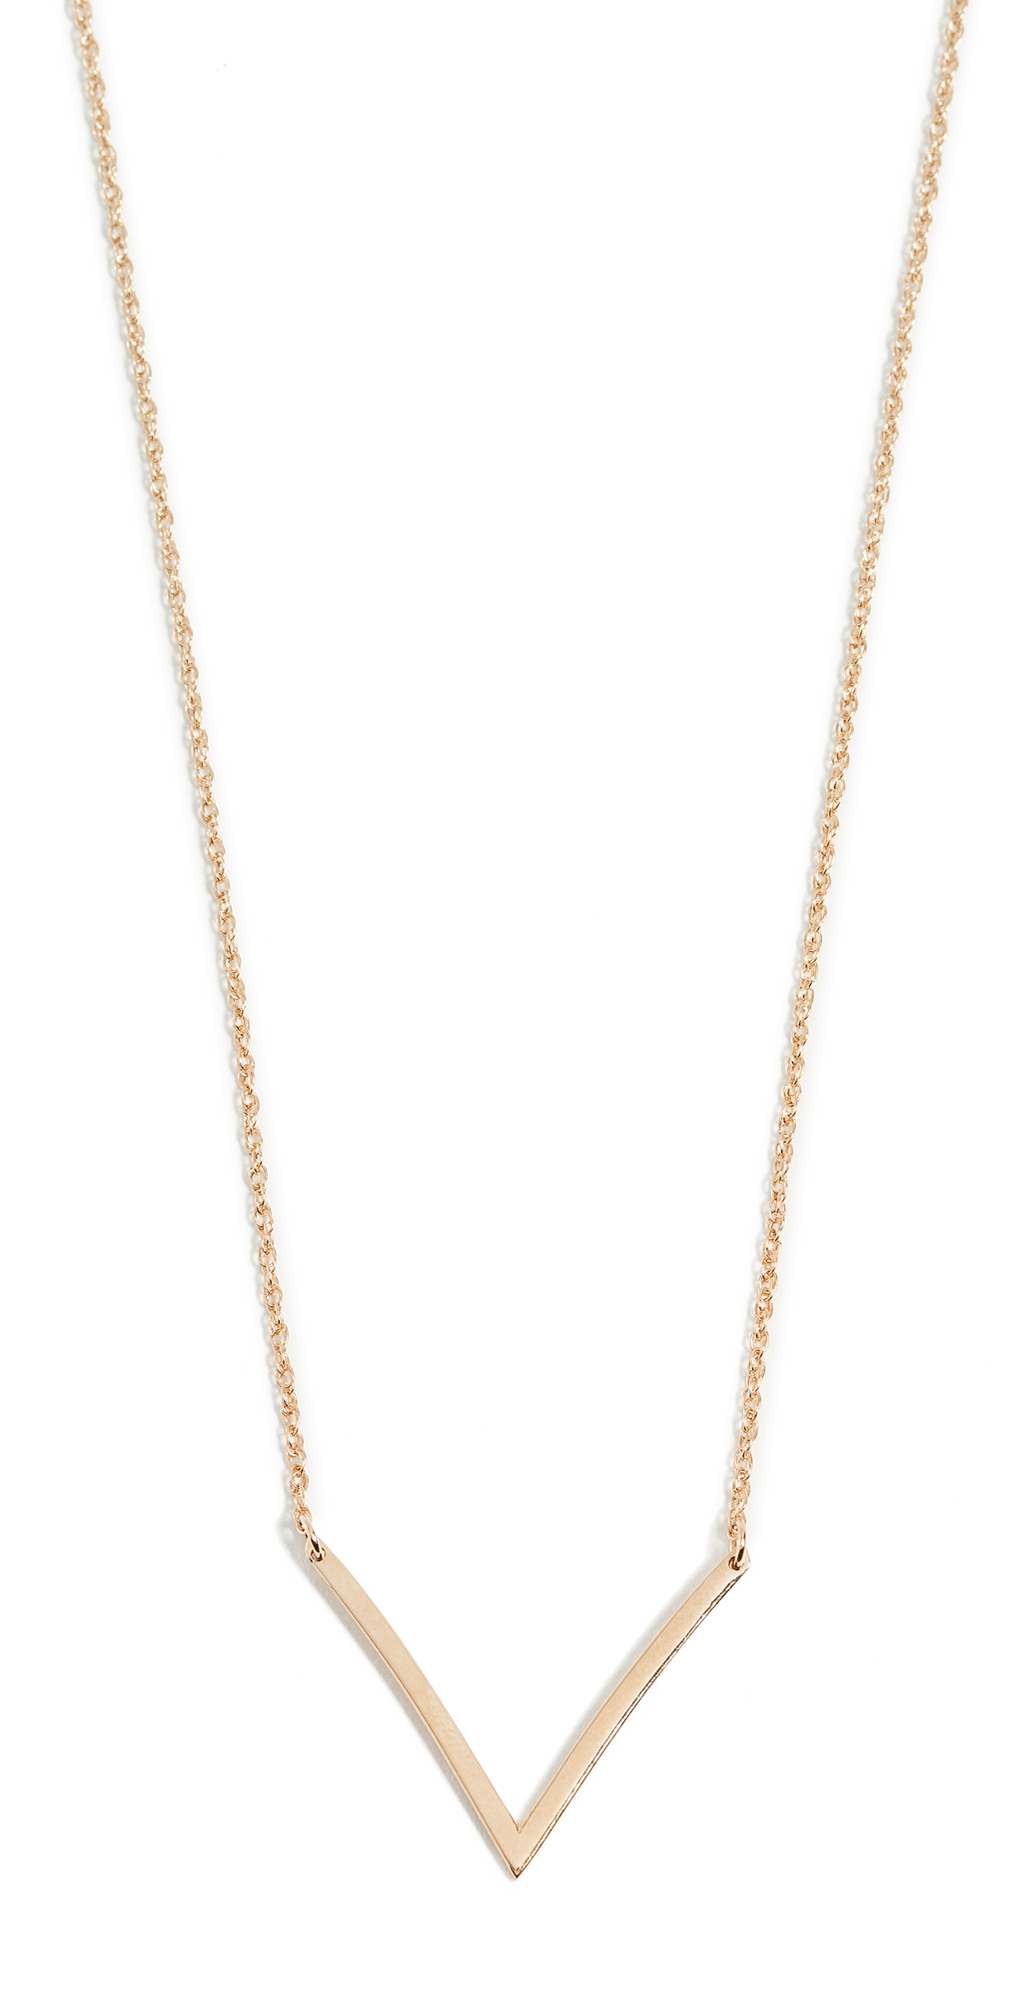 Bianca Small Necklace